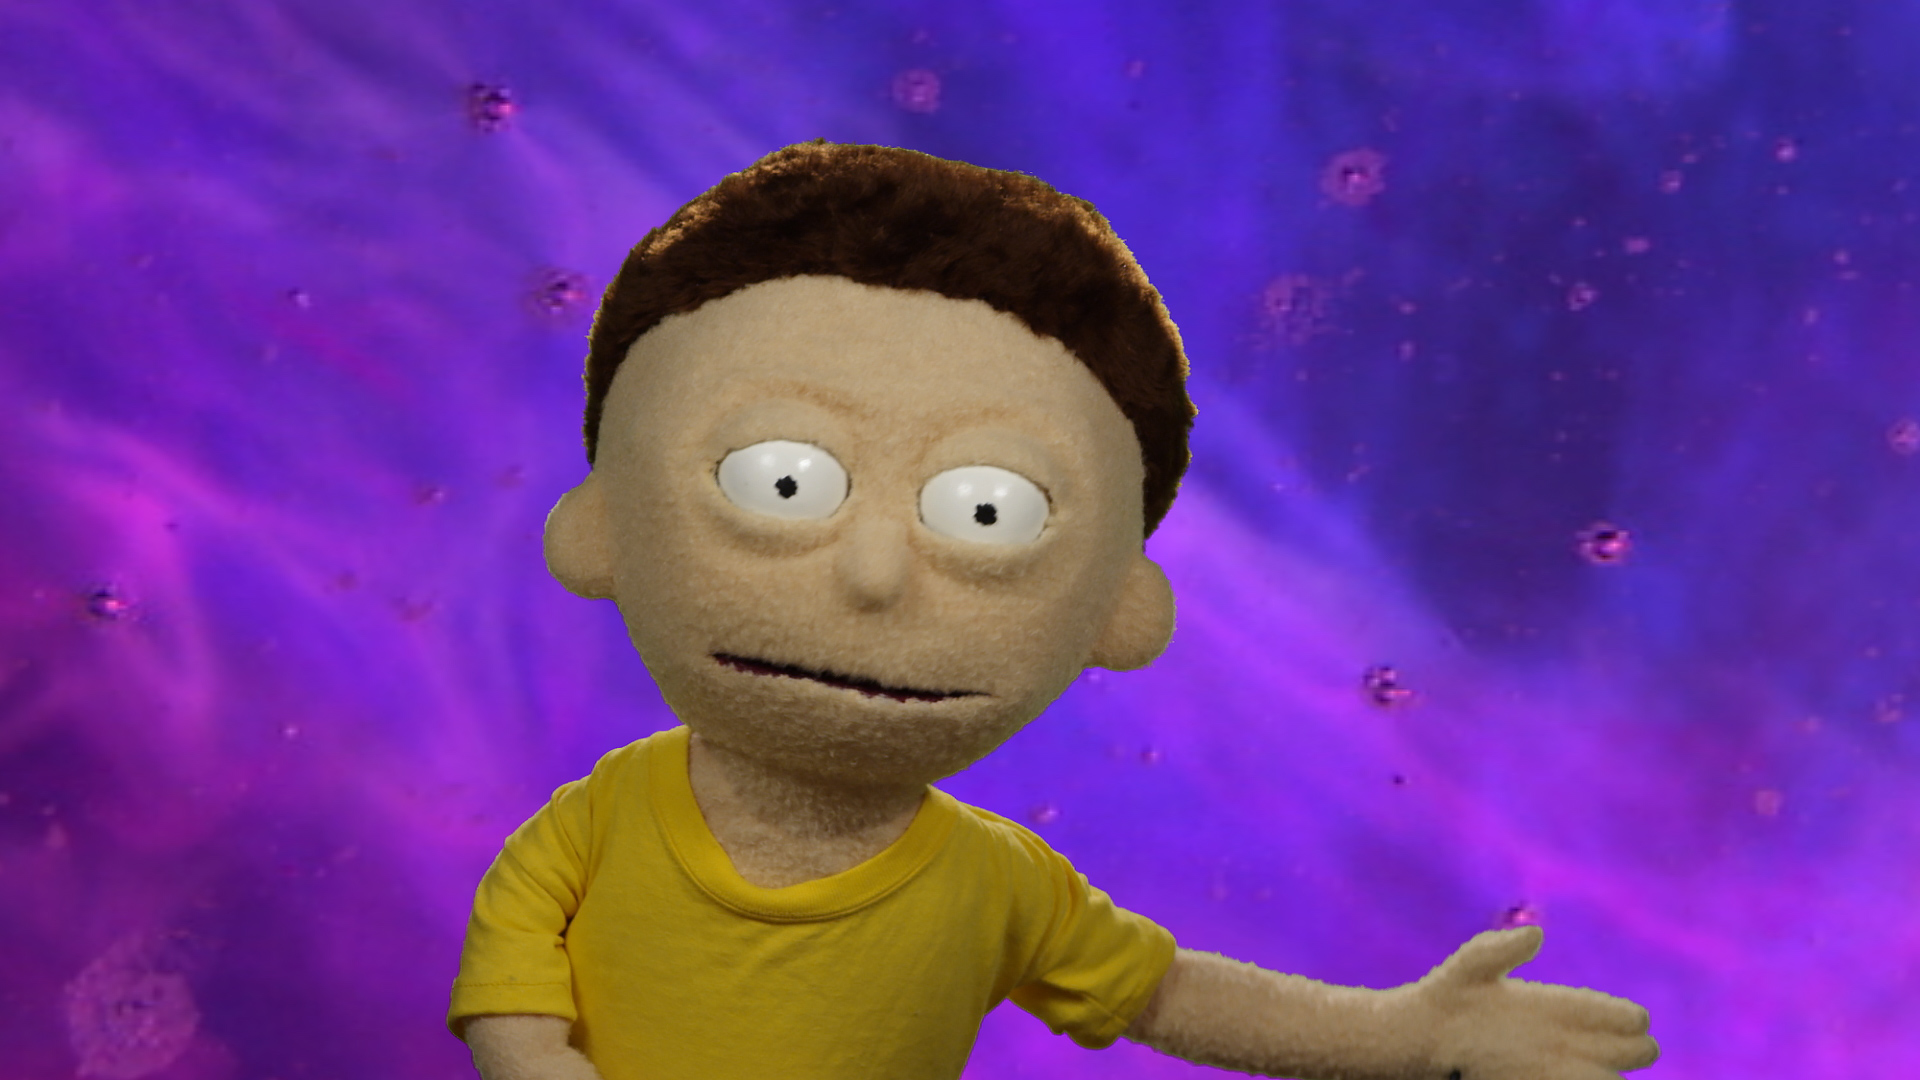 Morty Smith puppet from the Rick and Morty Blu-ray commercial shot and edited by Todd Bishop